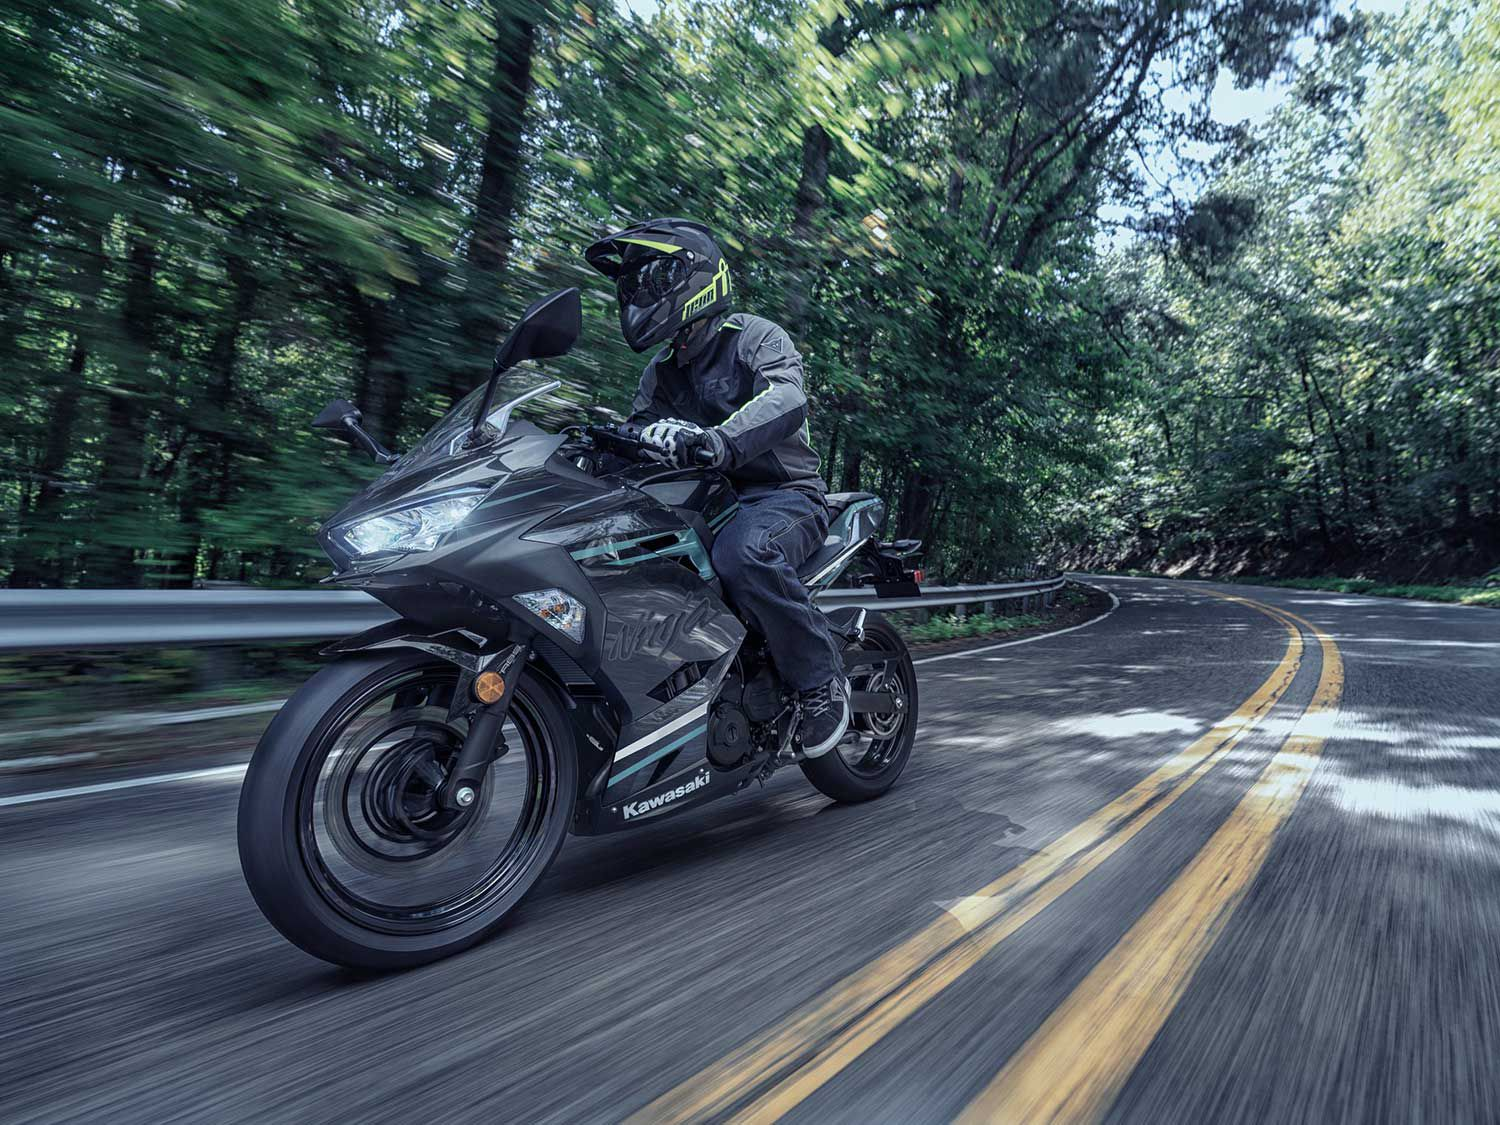 The Ninja 400 is a great machine and has some big pluses for newer riders, but bikes like these don't have to be the only option.